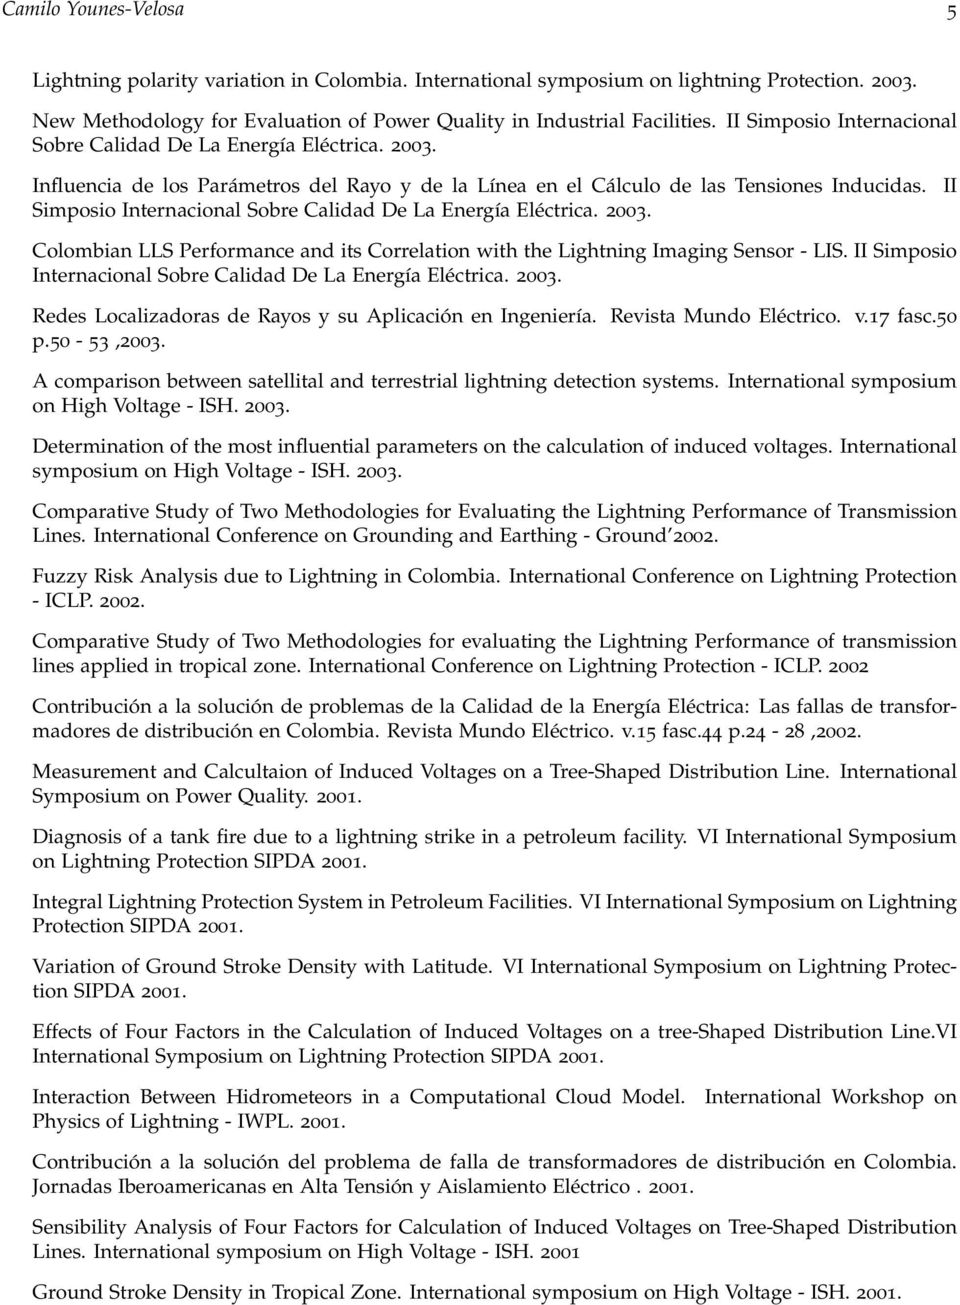 Simposio Internacional Sobre Calidad De La Energía Eléctrica. 2003. II Colombian LLS Performance and its Correlation with the Lightning Imaging Sensor - LIS.